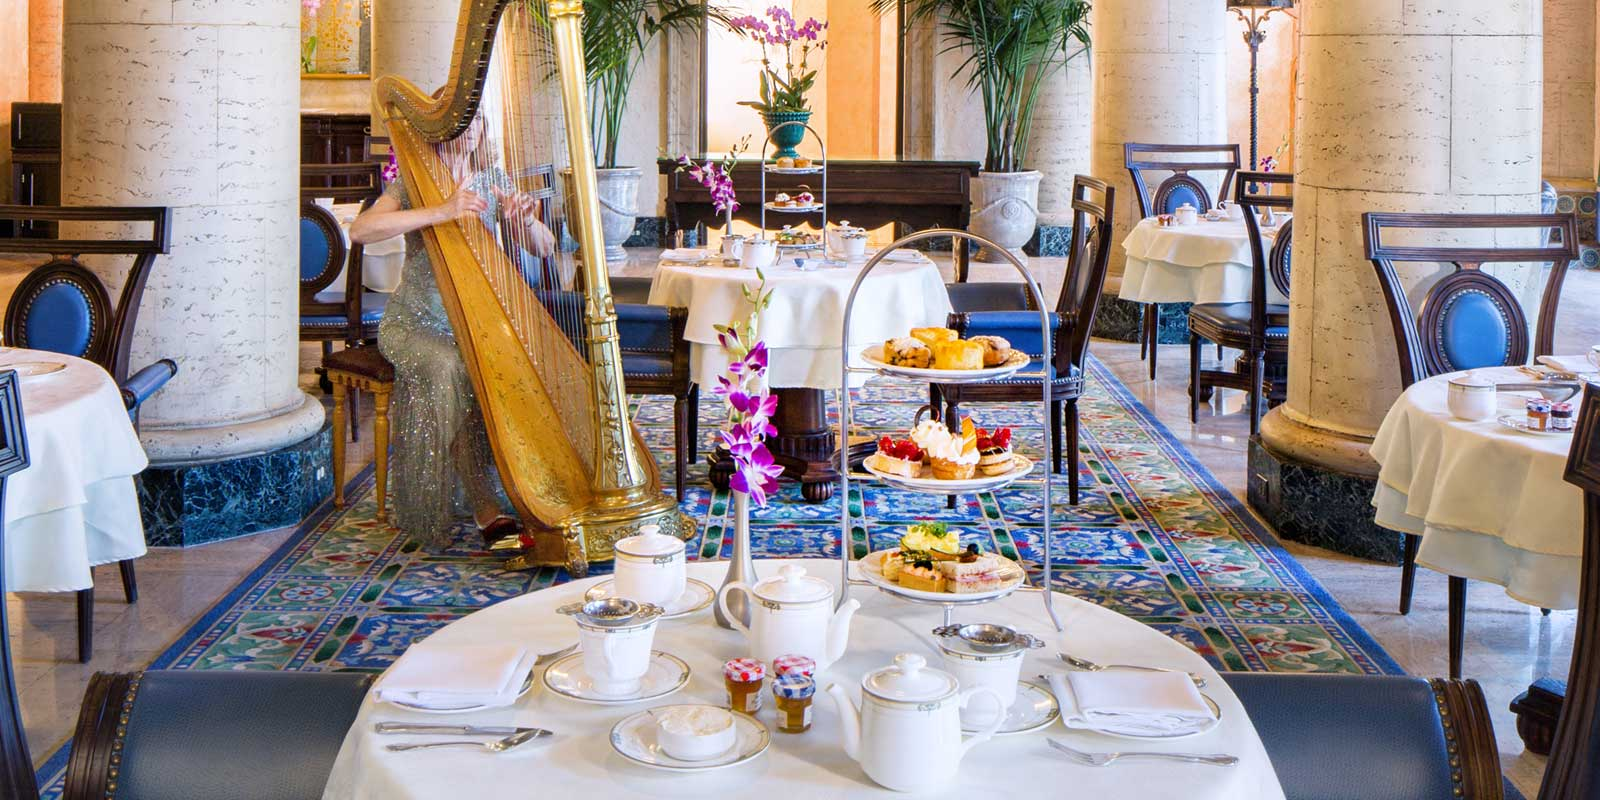 Afternoon tea at The Biltmore